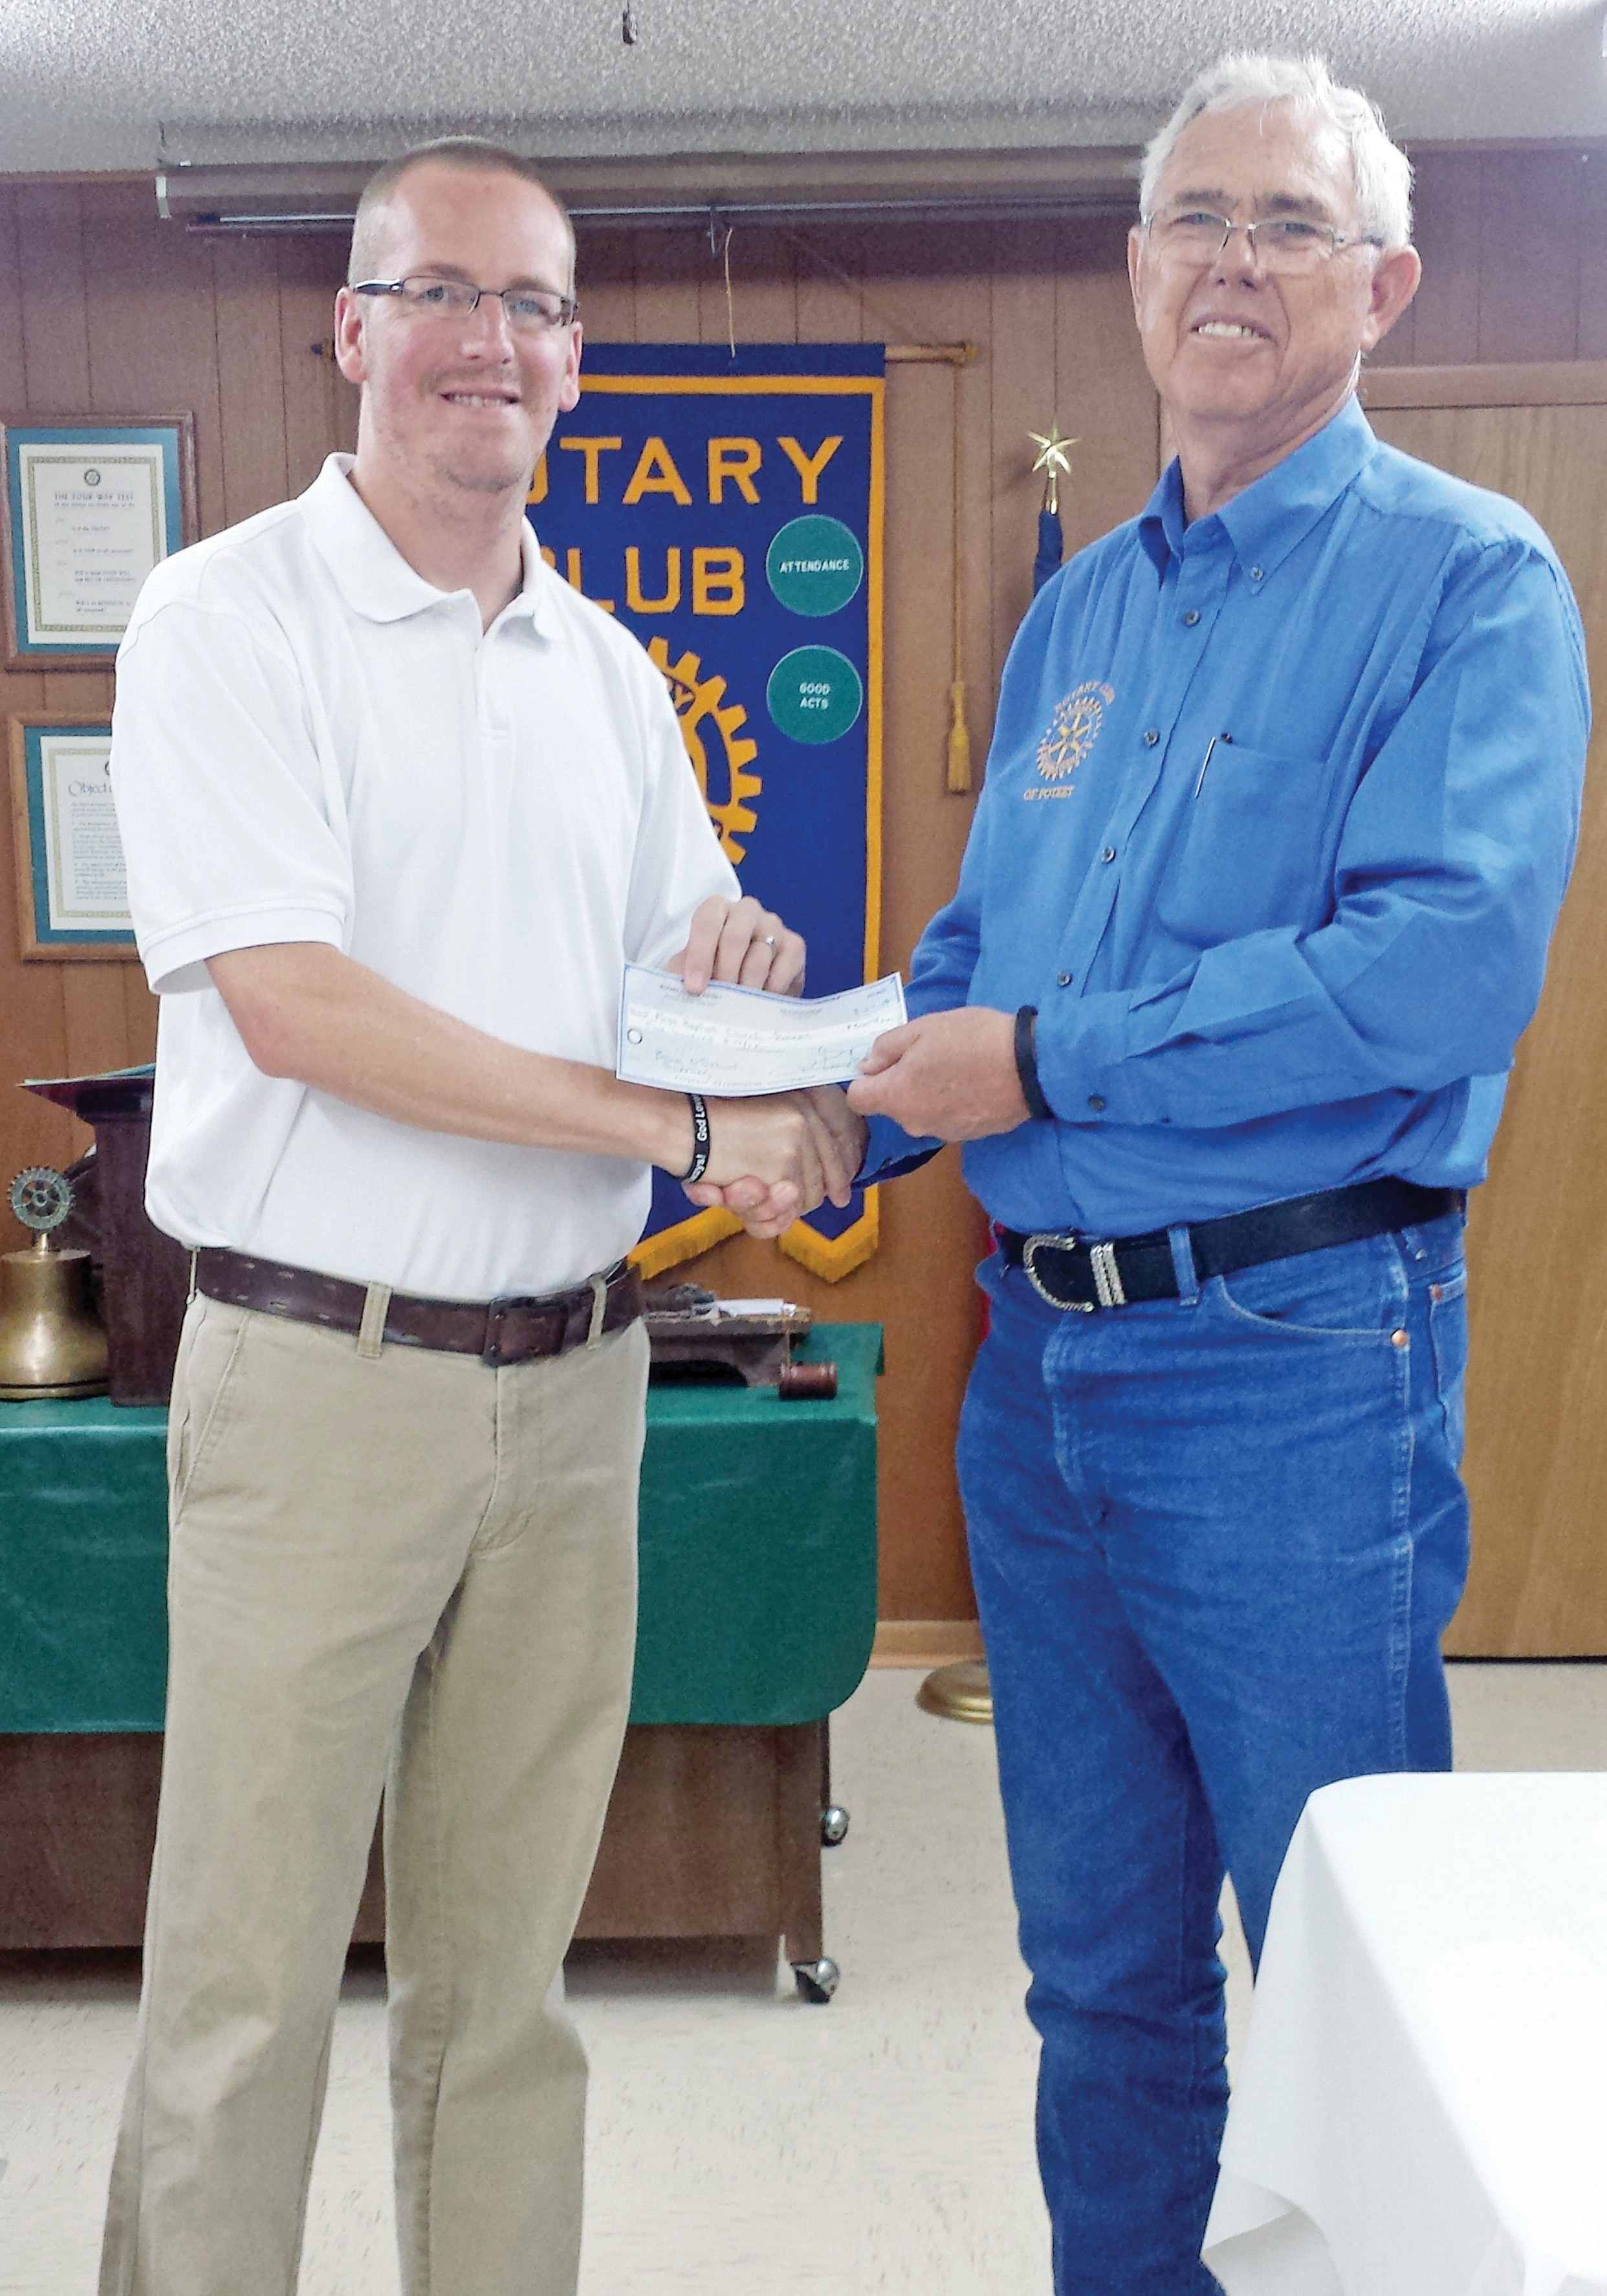 Mark Flack, new Pastor of First Baptist Church Poteet, accepts a check for $500 from Will Bates, on behalf of the Poteet Rotary Club. This donation will be used to provide school supplies for stuff the bus, which is then given to the teachers to disperse to those in need at Poteet ISD.